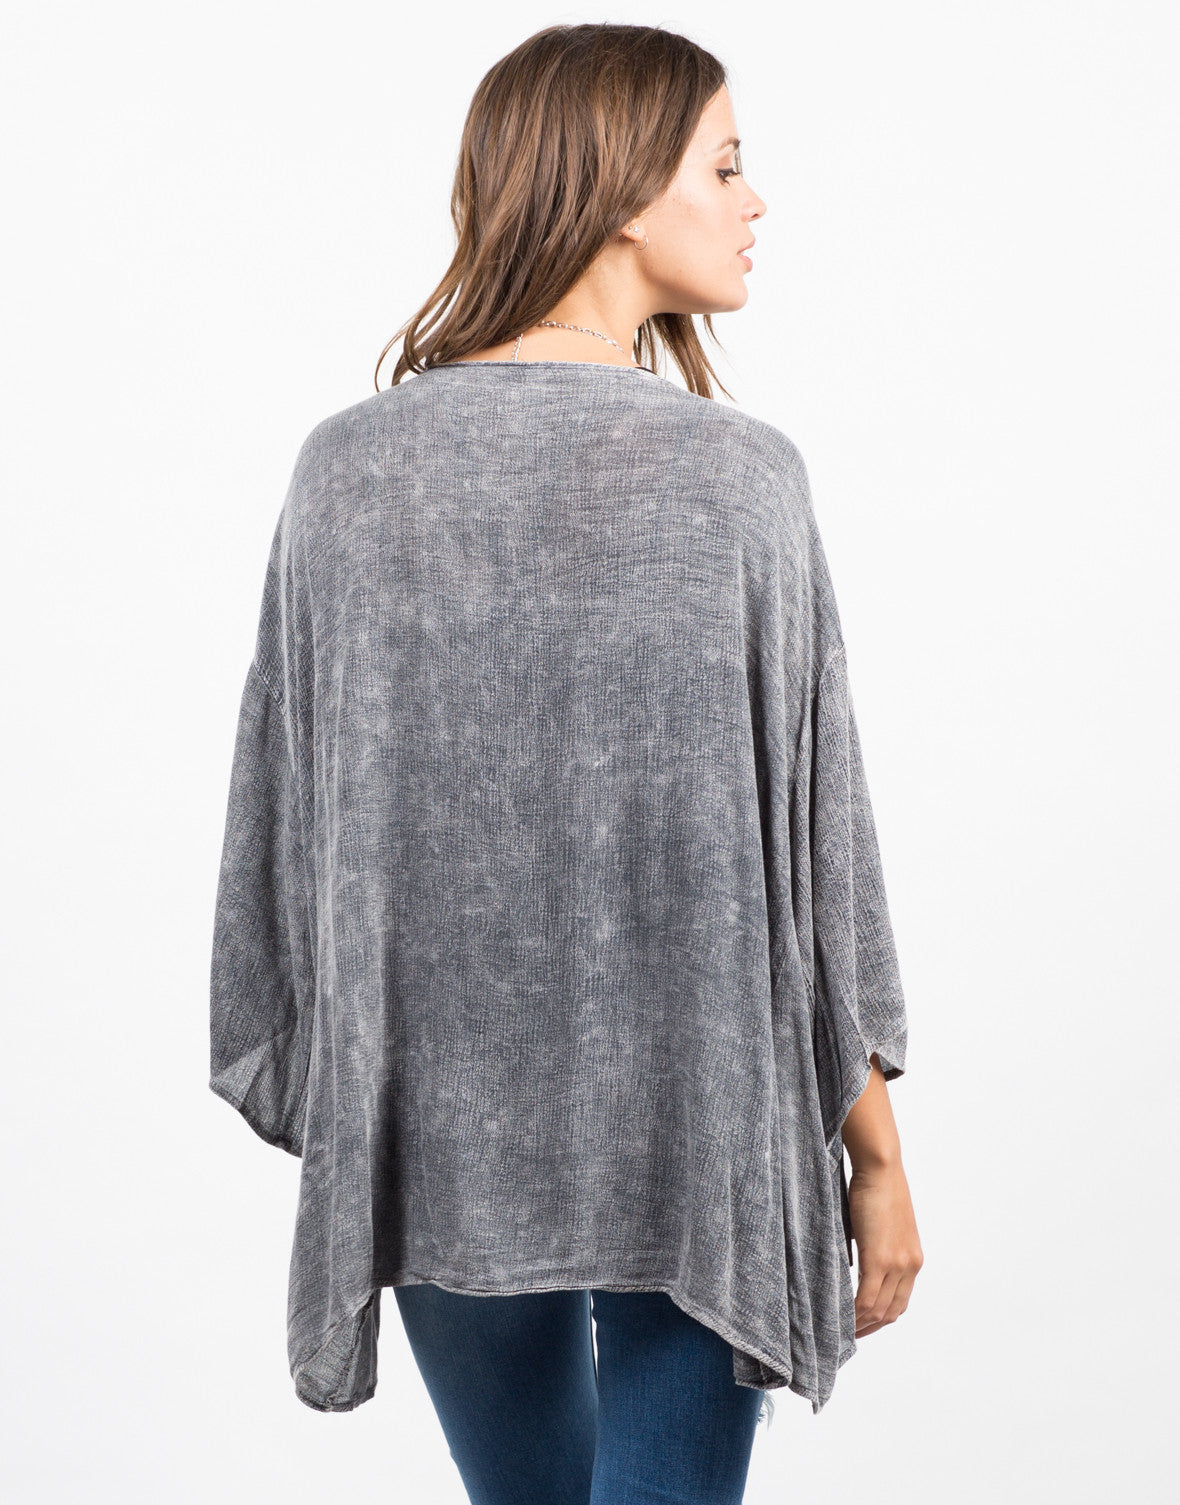 Back View of Vintage Washed Cardigan